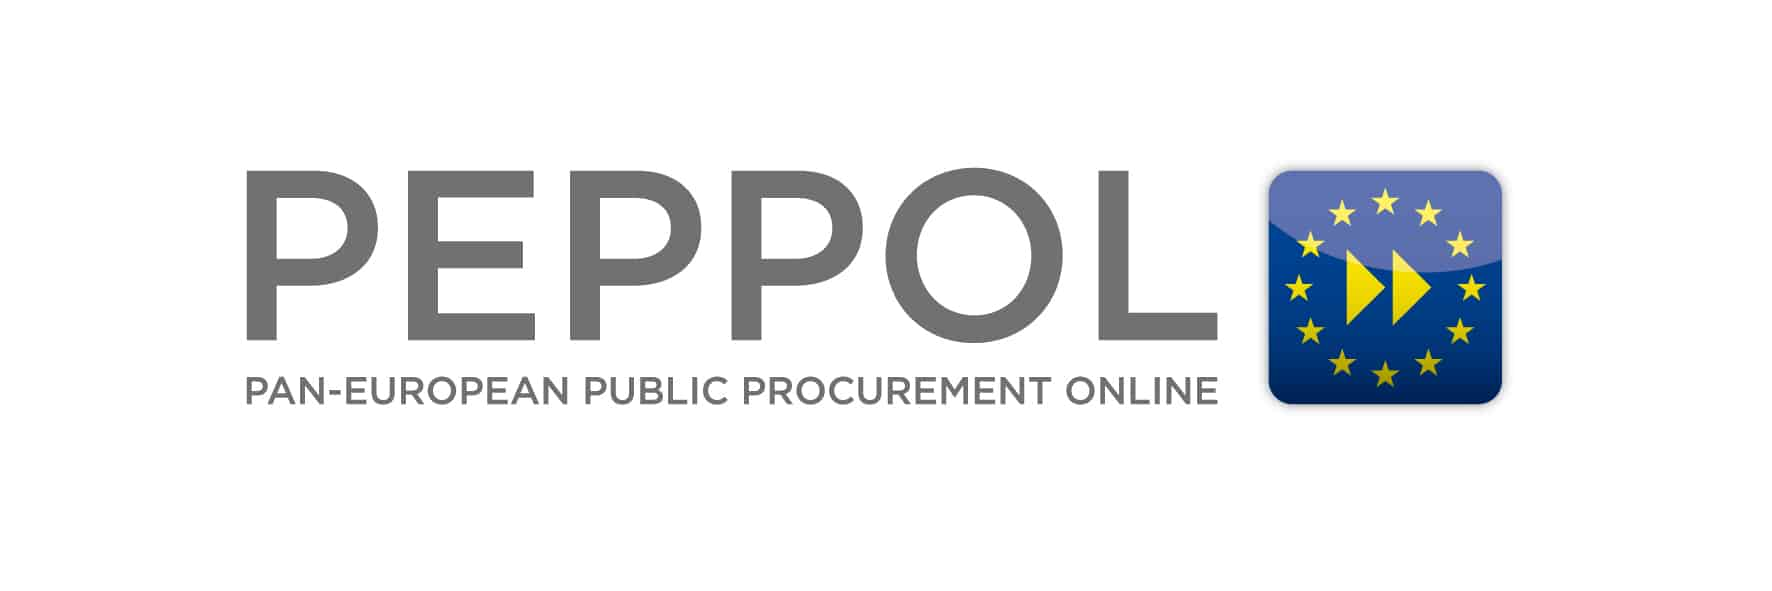 PEPPOL Logo [Source: http://peppol.eu]